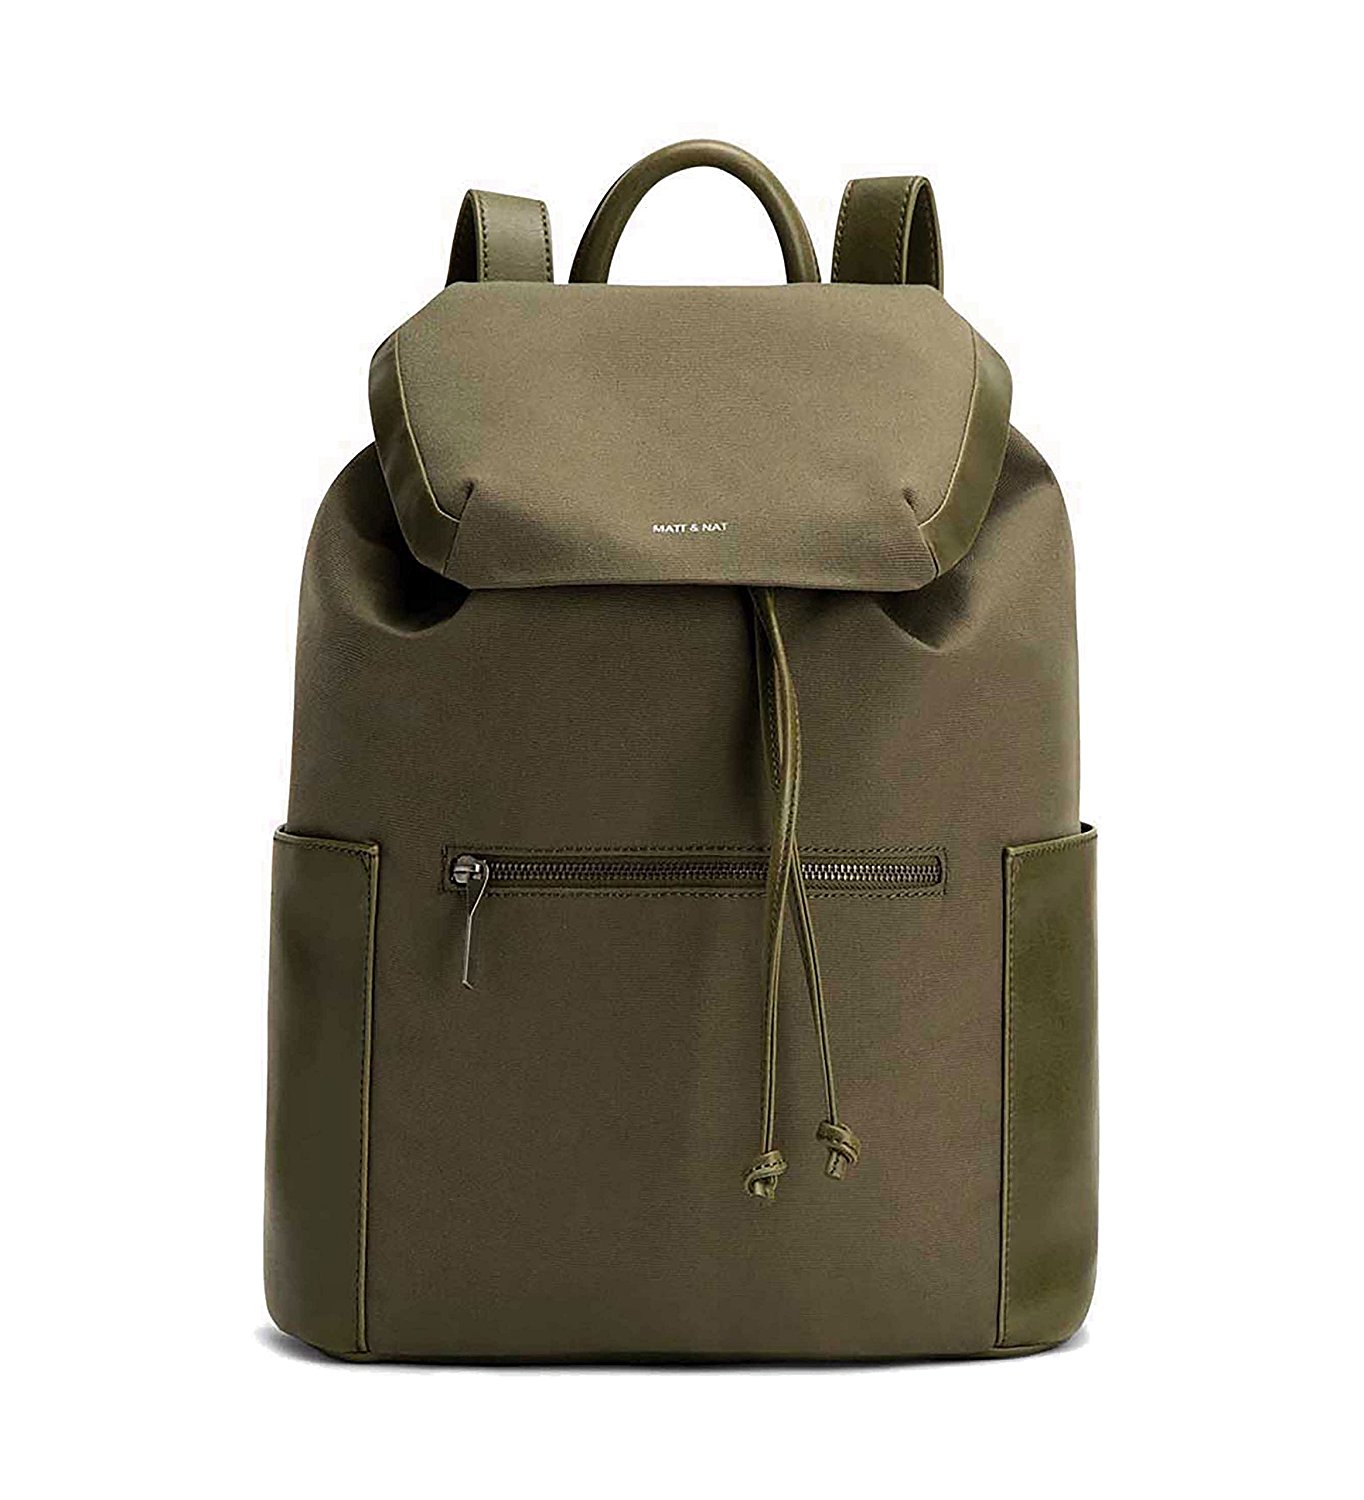 Matt & Nat Greco Canvas Backpack in Olive